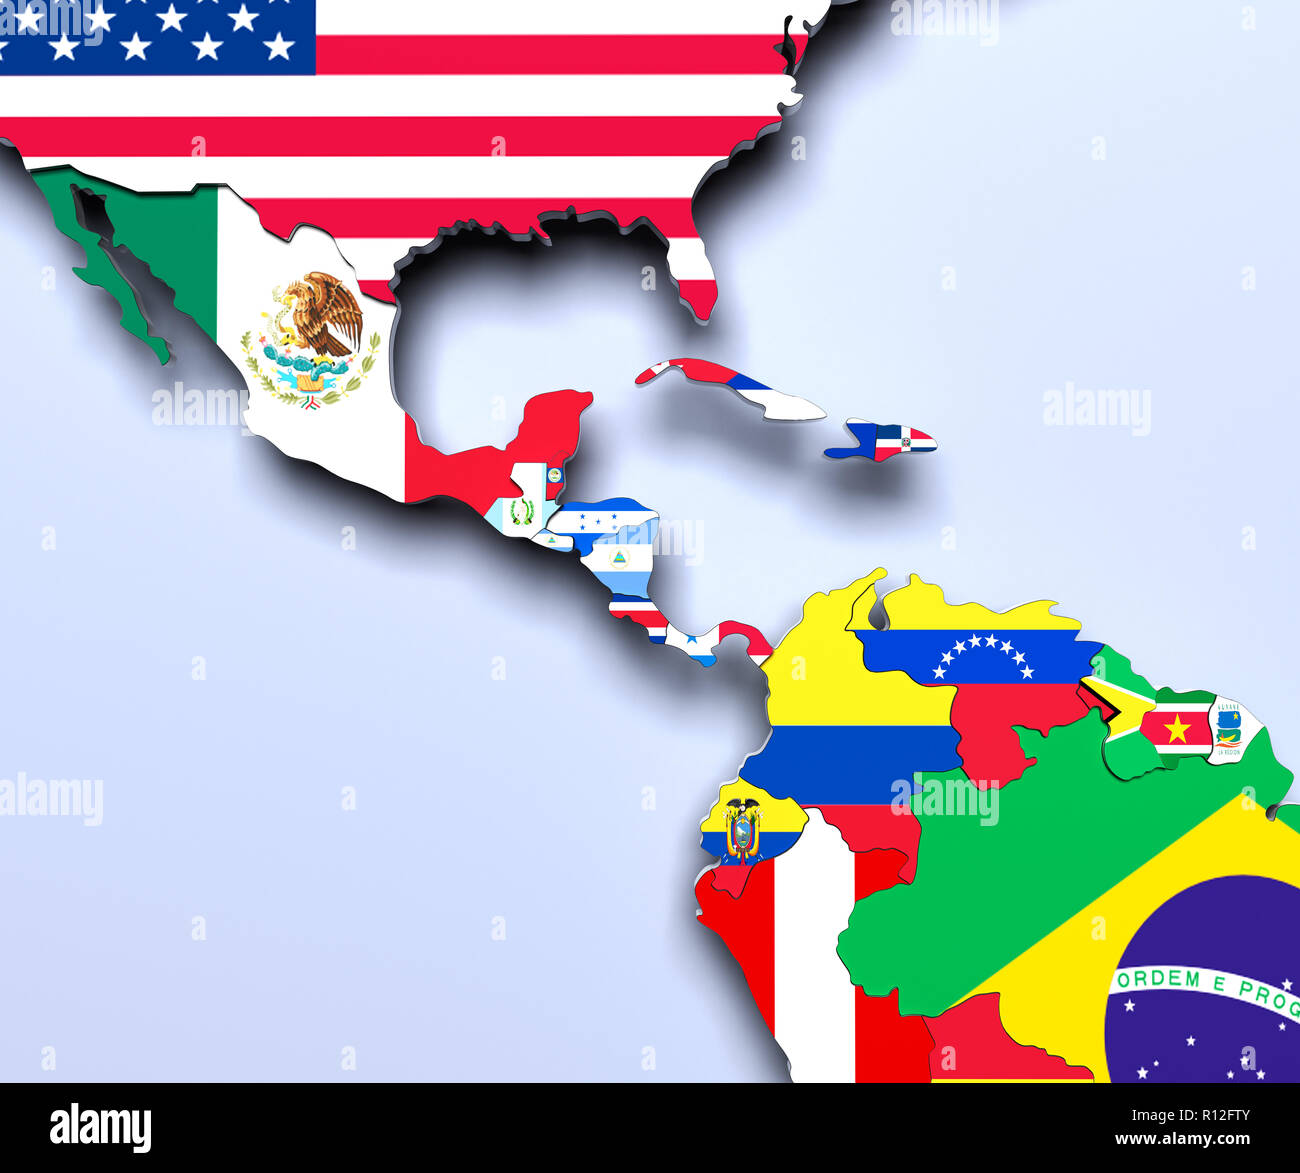 america central map 3d render Stock Photo: 224405803 - Alamy